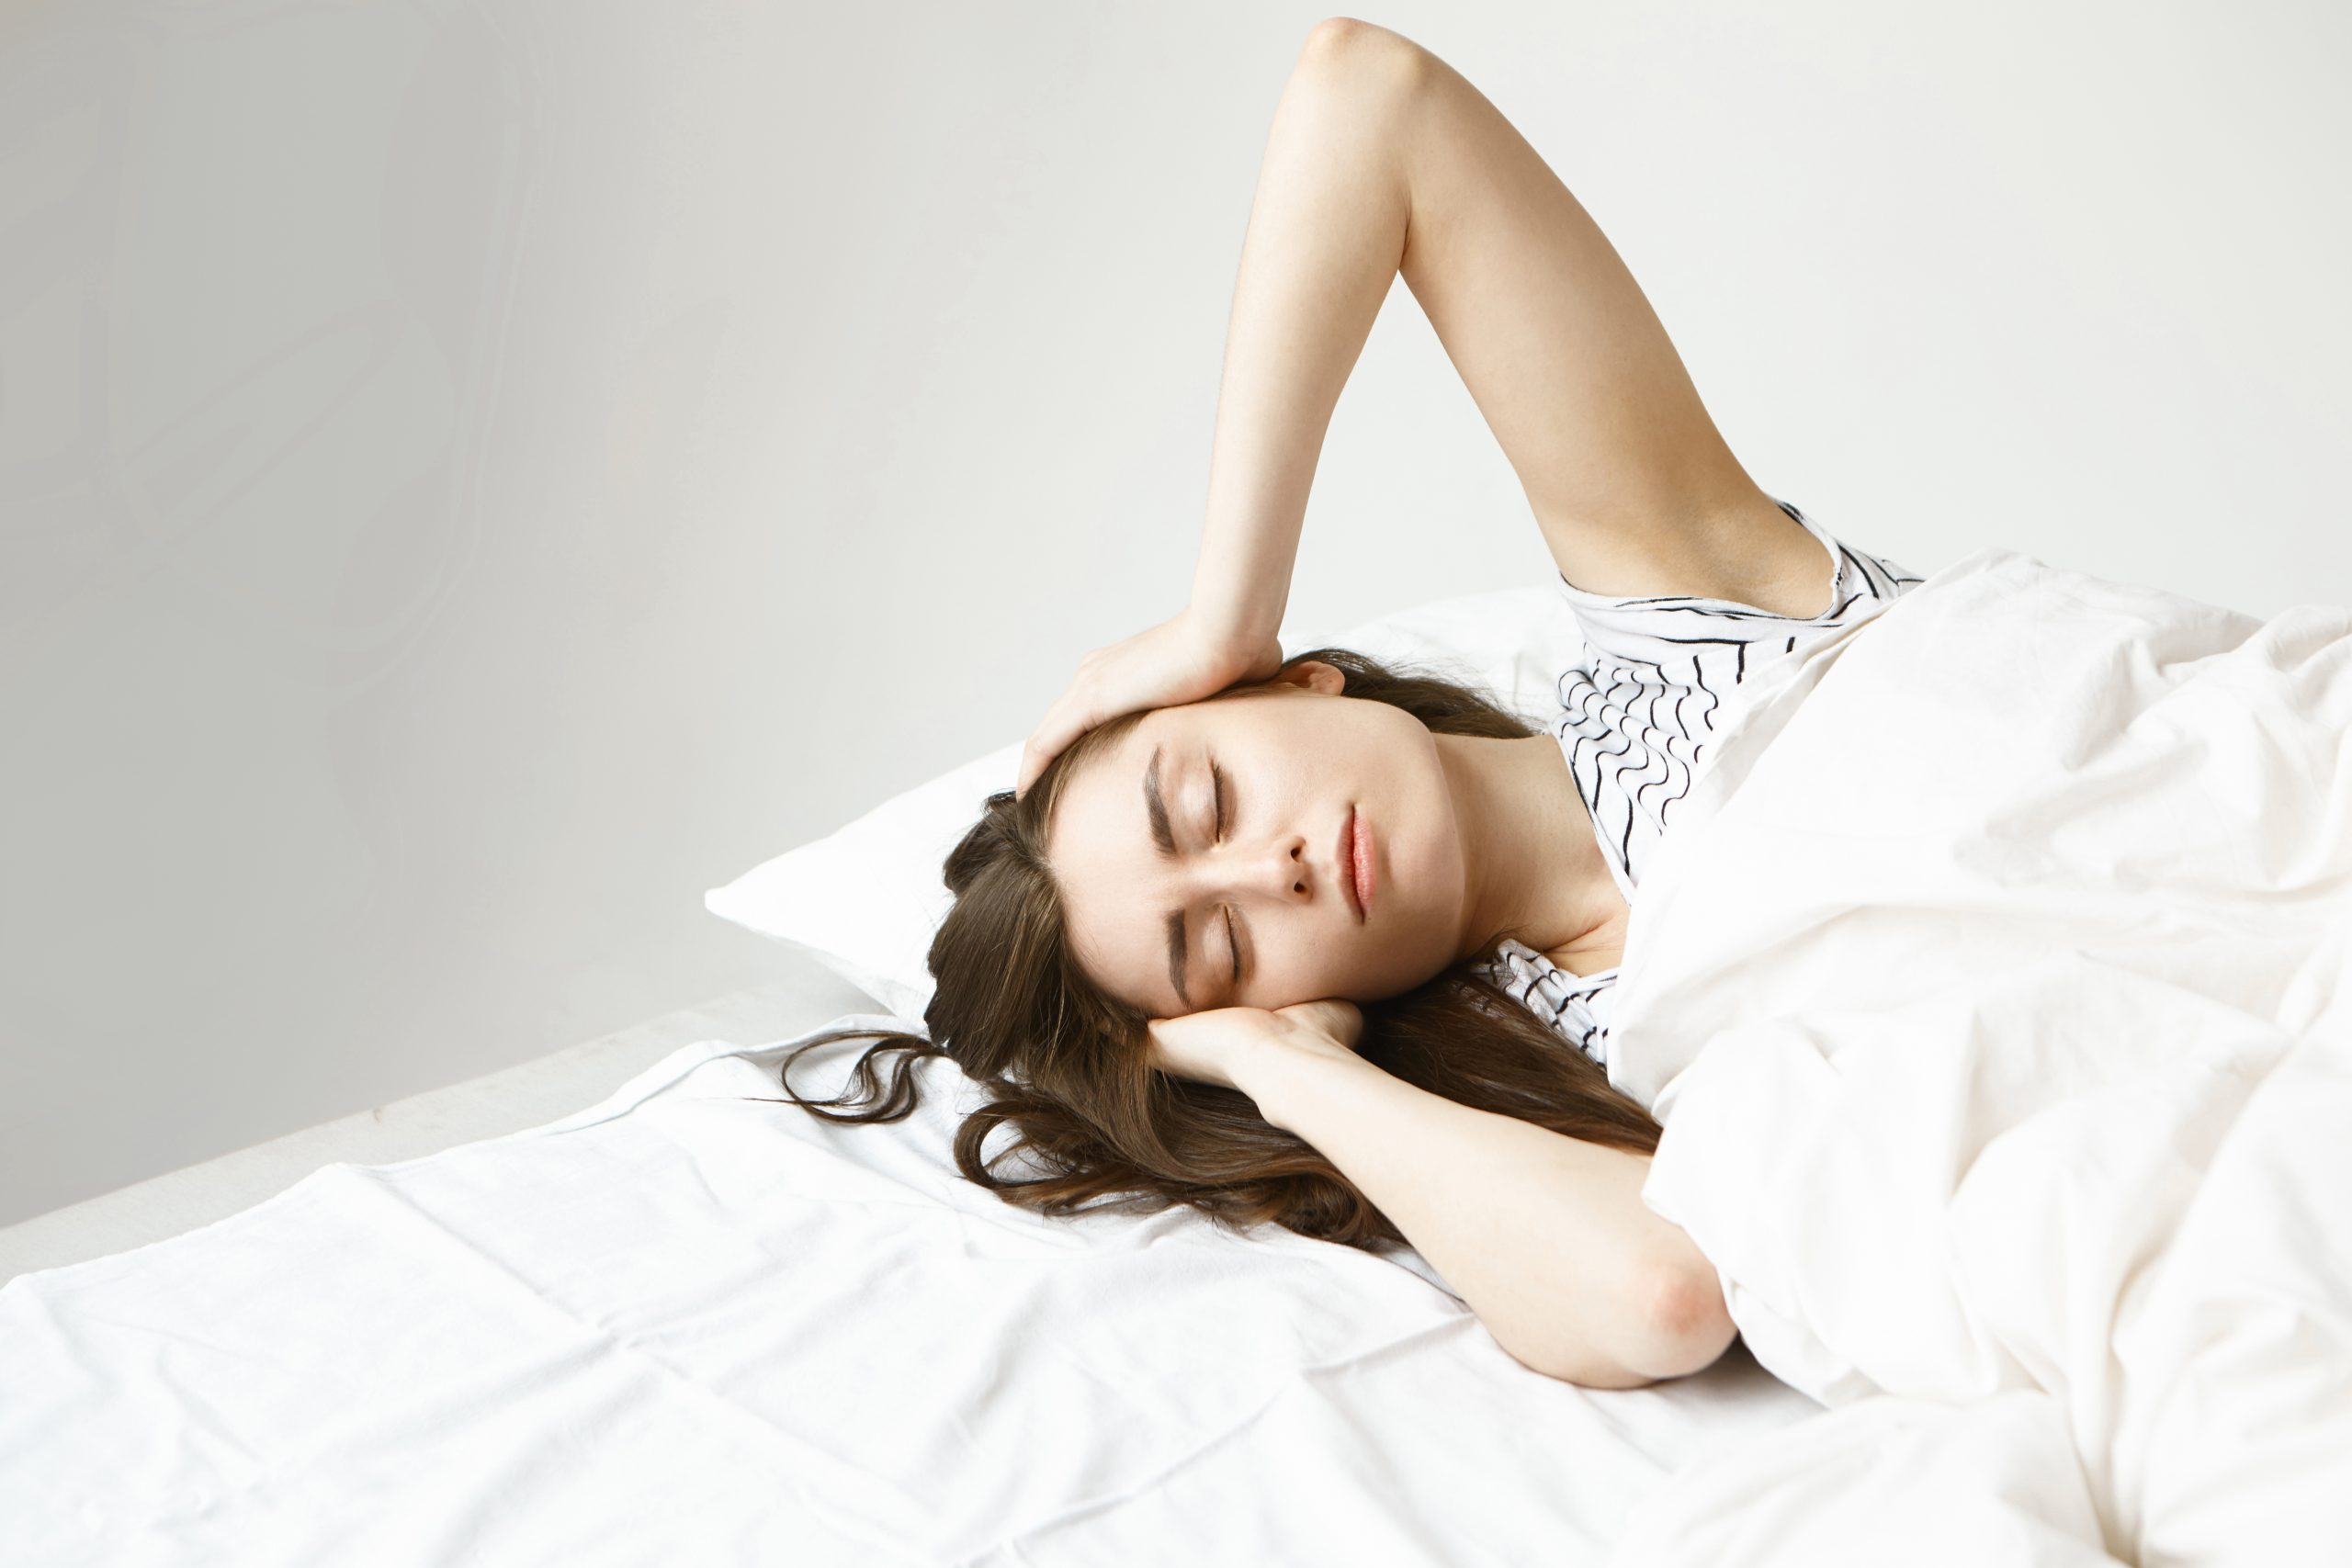 people insomnia sleeping disorders concept indoor shot beautiful sad young dark haired woman lying white bedclothes her room massaging head trying get asleep after long working day scaled